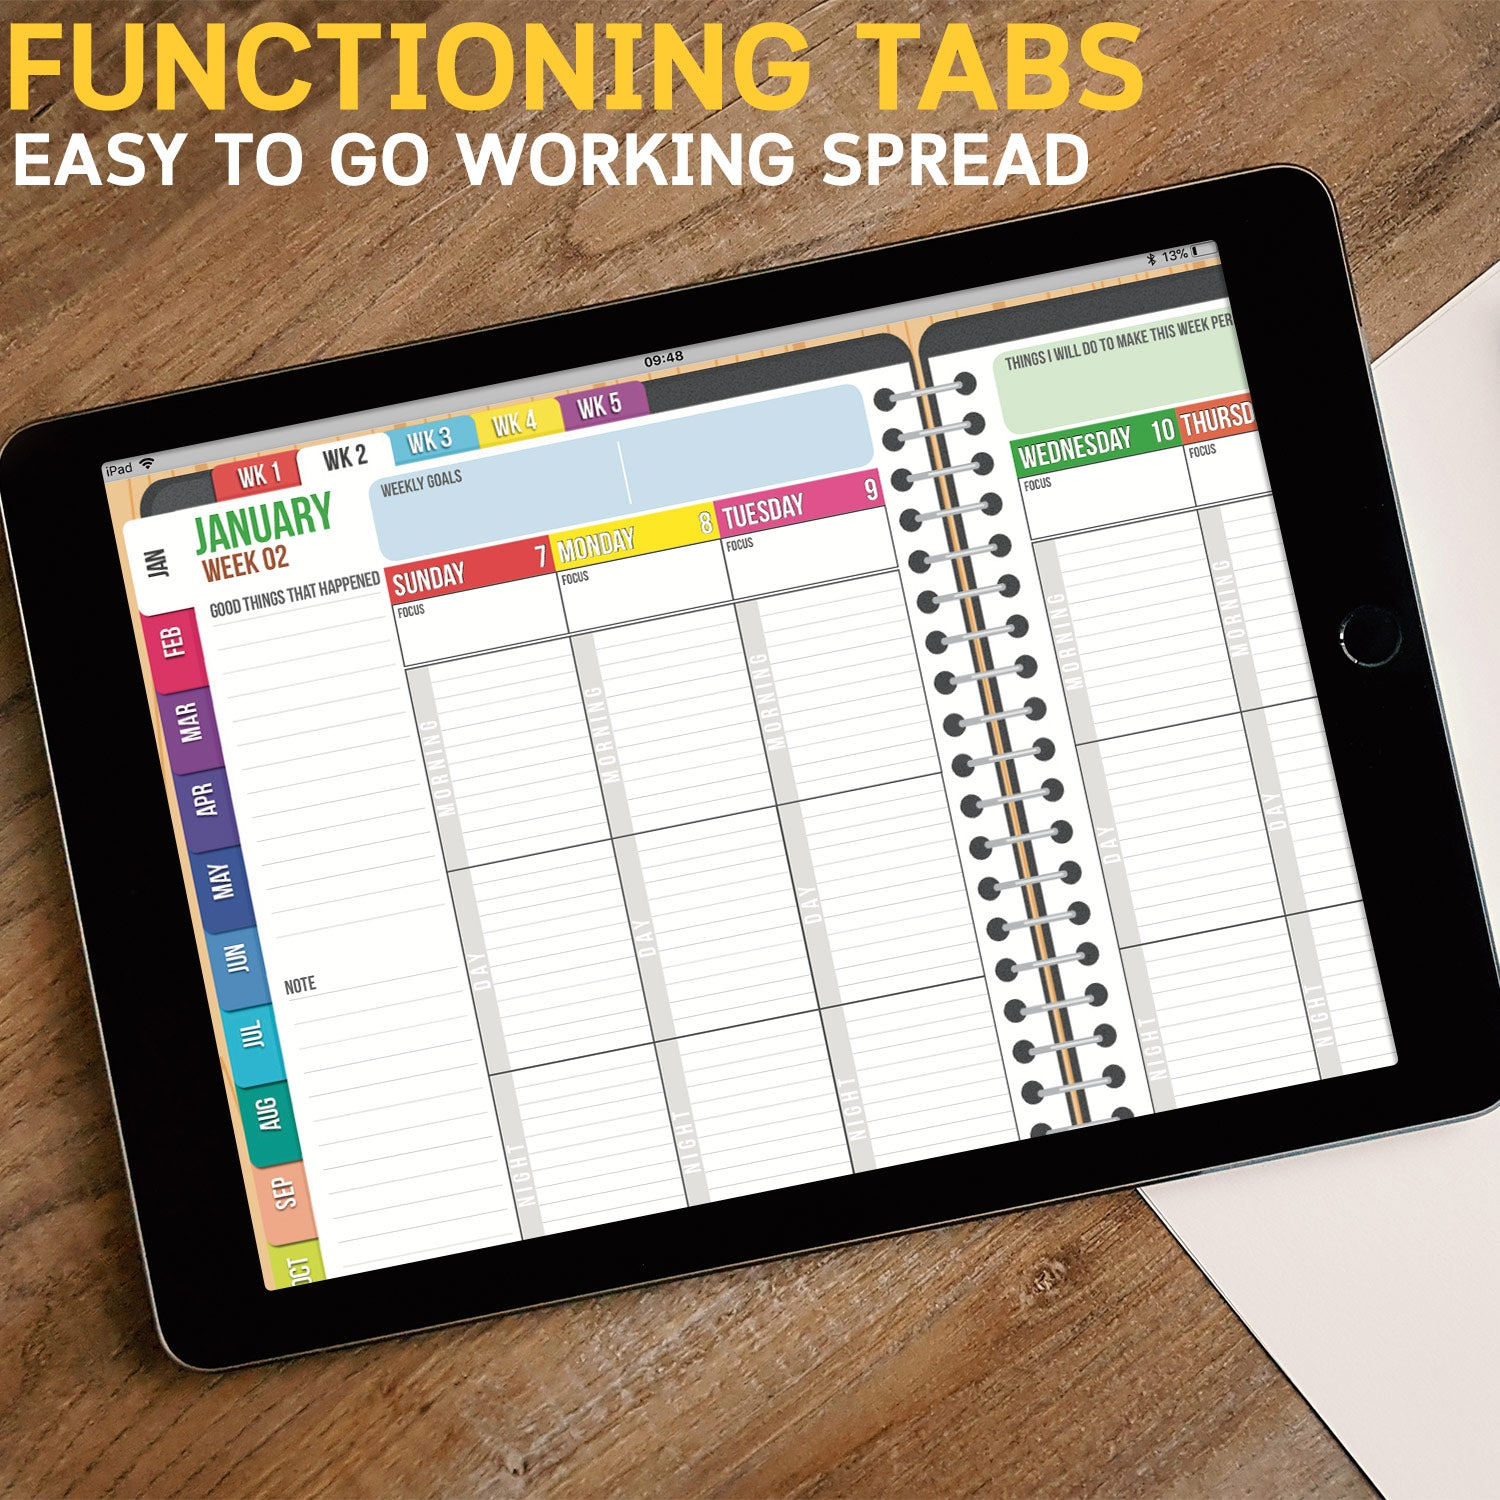 2018 DATED SUNDAY Version: BabaNana Digital Planner for GoodNotes with functioning tabs